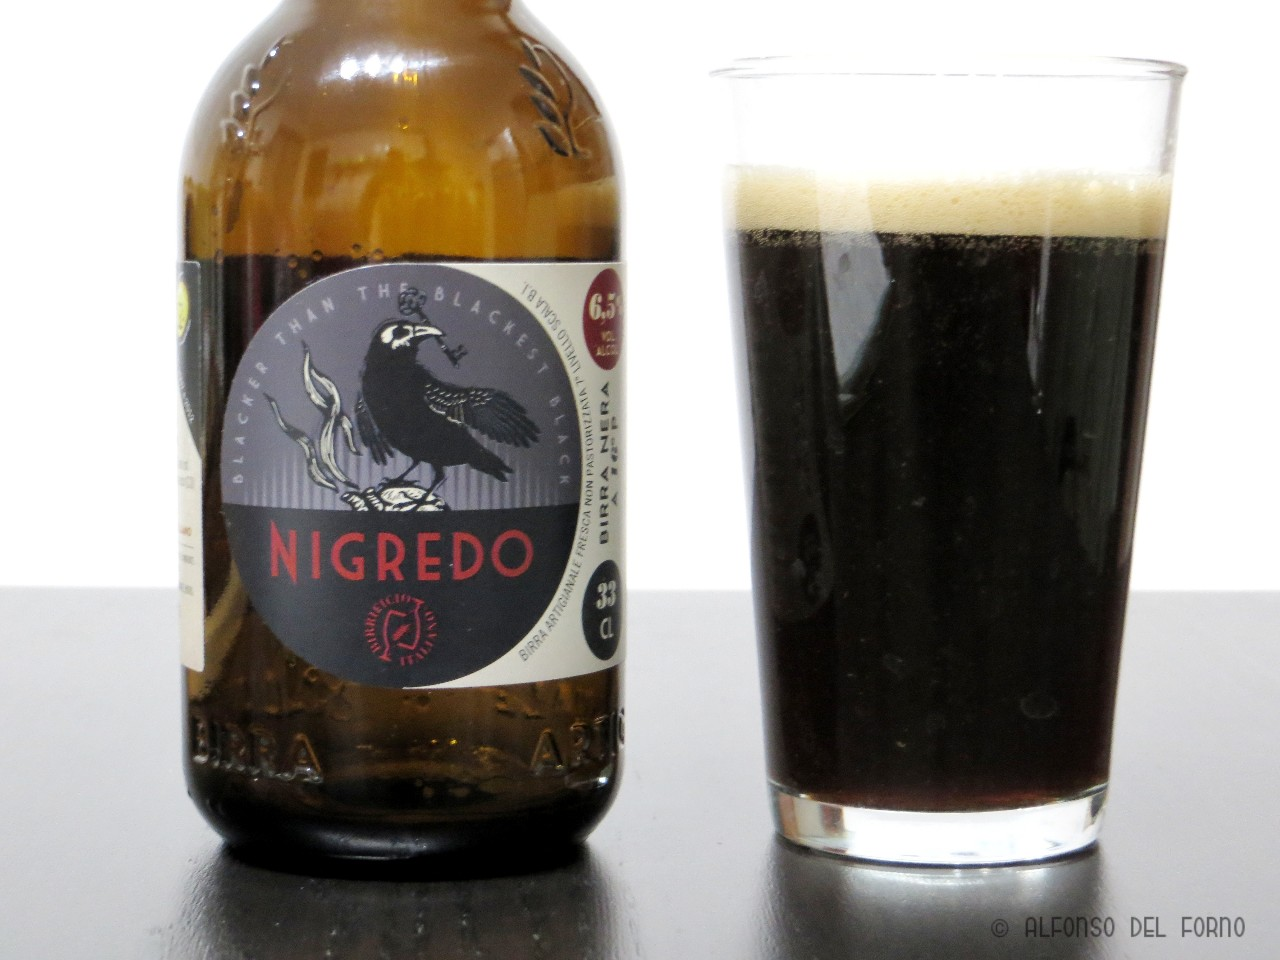 Nigredo di Birrificio Italiano